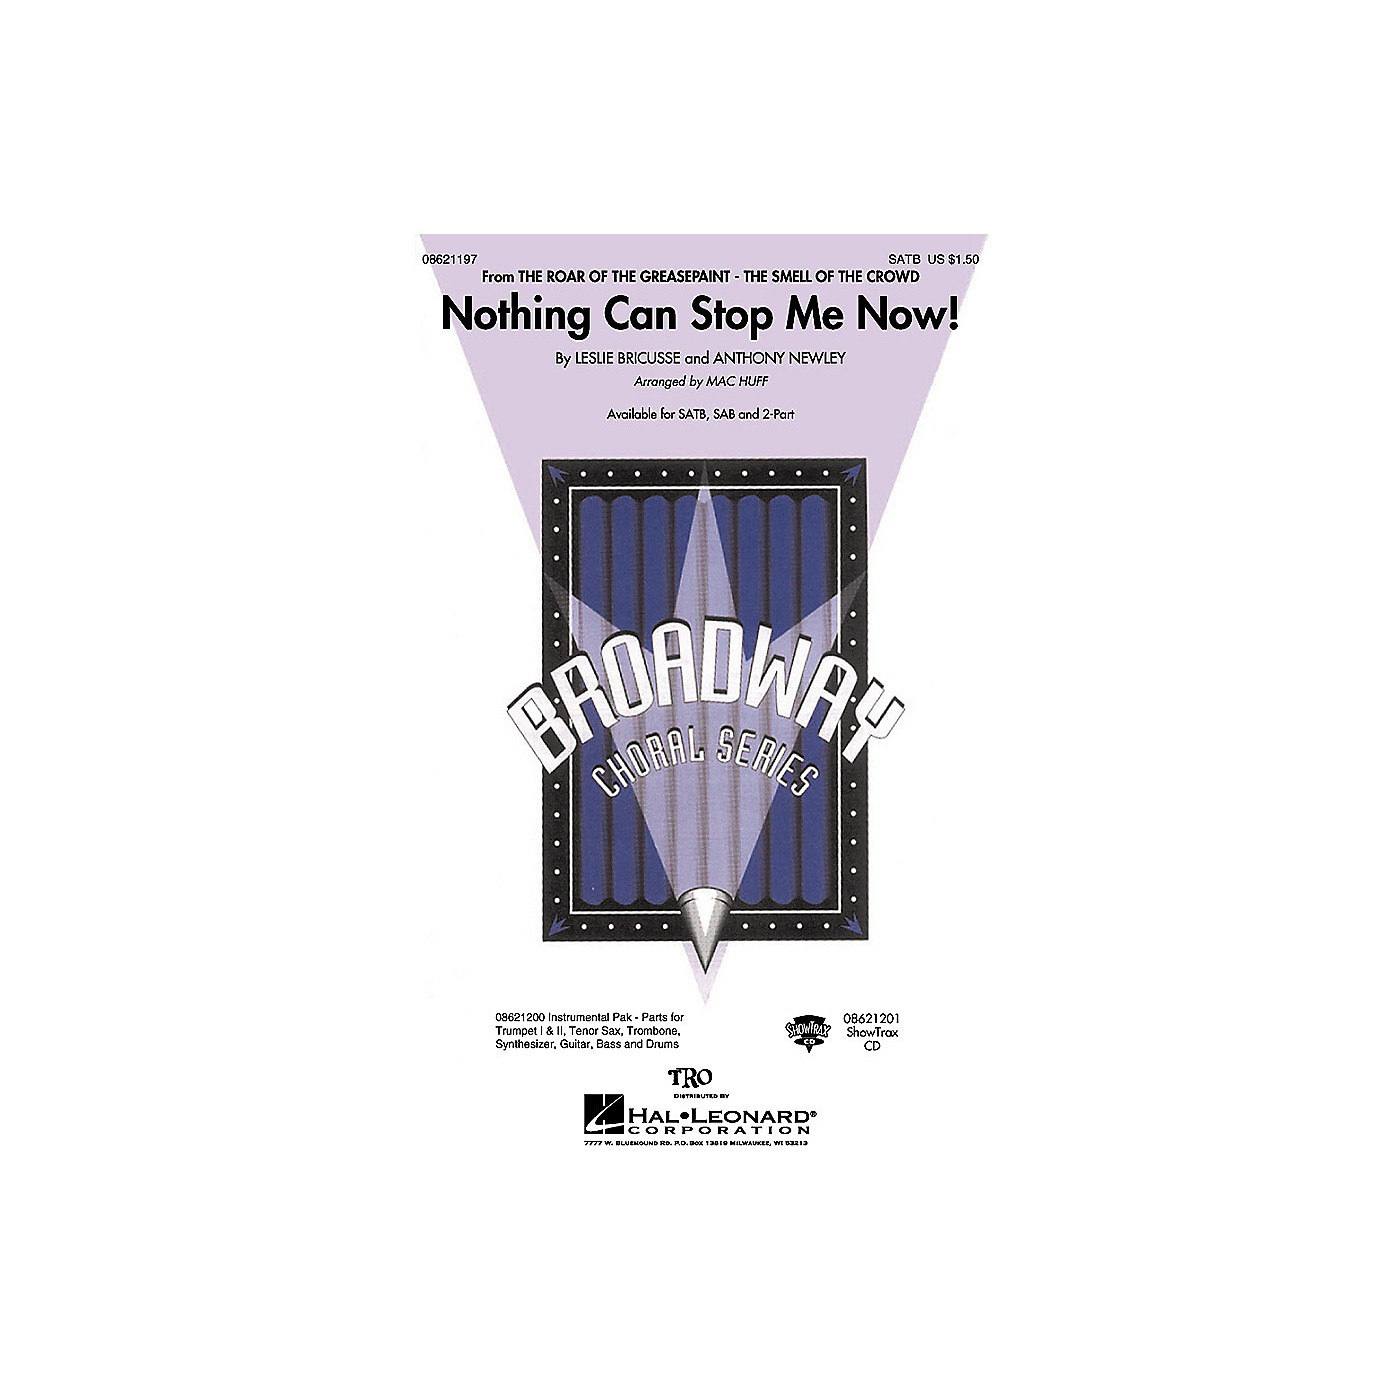 Hal Leonard Nothing Can Stop Me Now! (from The Roar of the Greasepaint) SATB arranged by Mac Huff thumbnail